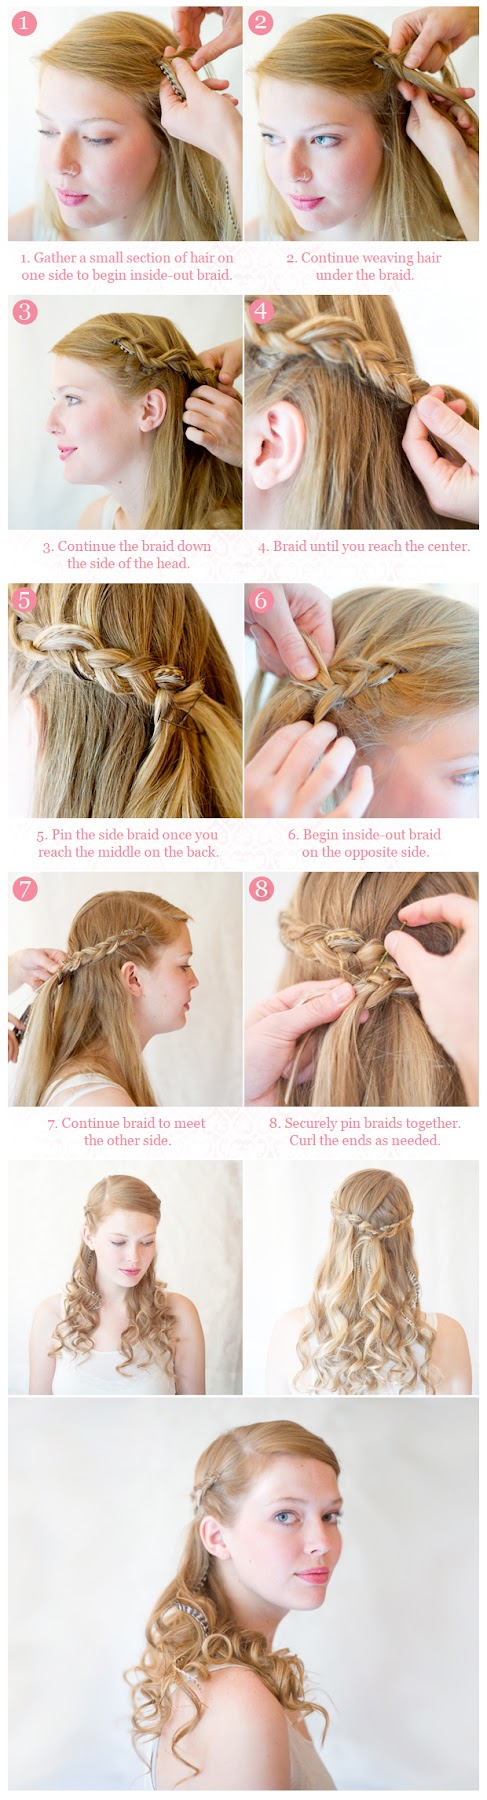 Outstanding Hairstyles Tips And Tutorial Make Inside Out Half Up Braid Hairstyle Inspiration Daily Dogsangcom